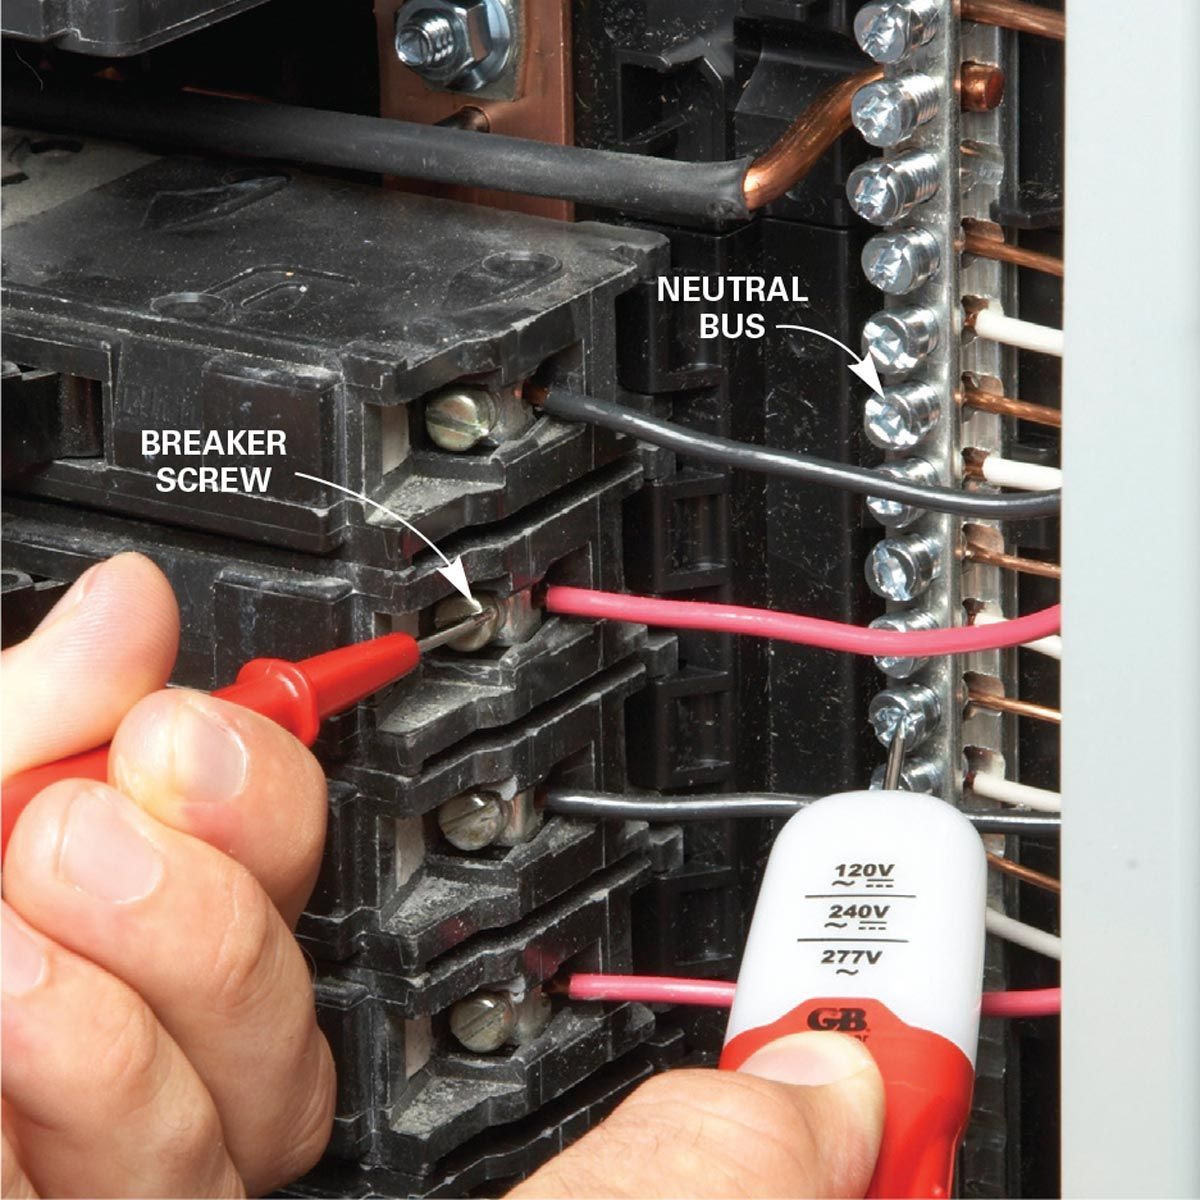 Pin on Electrical wiring